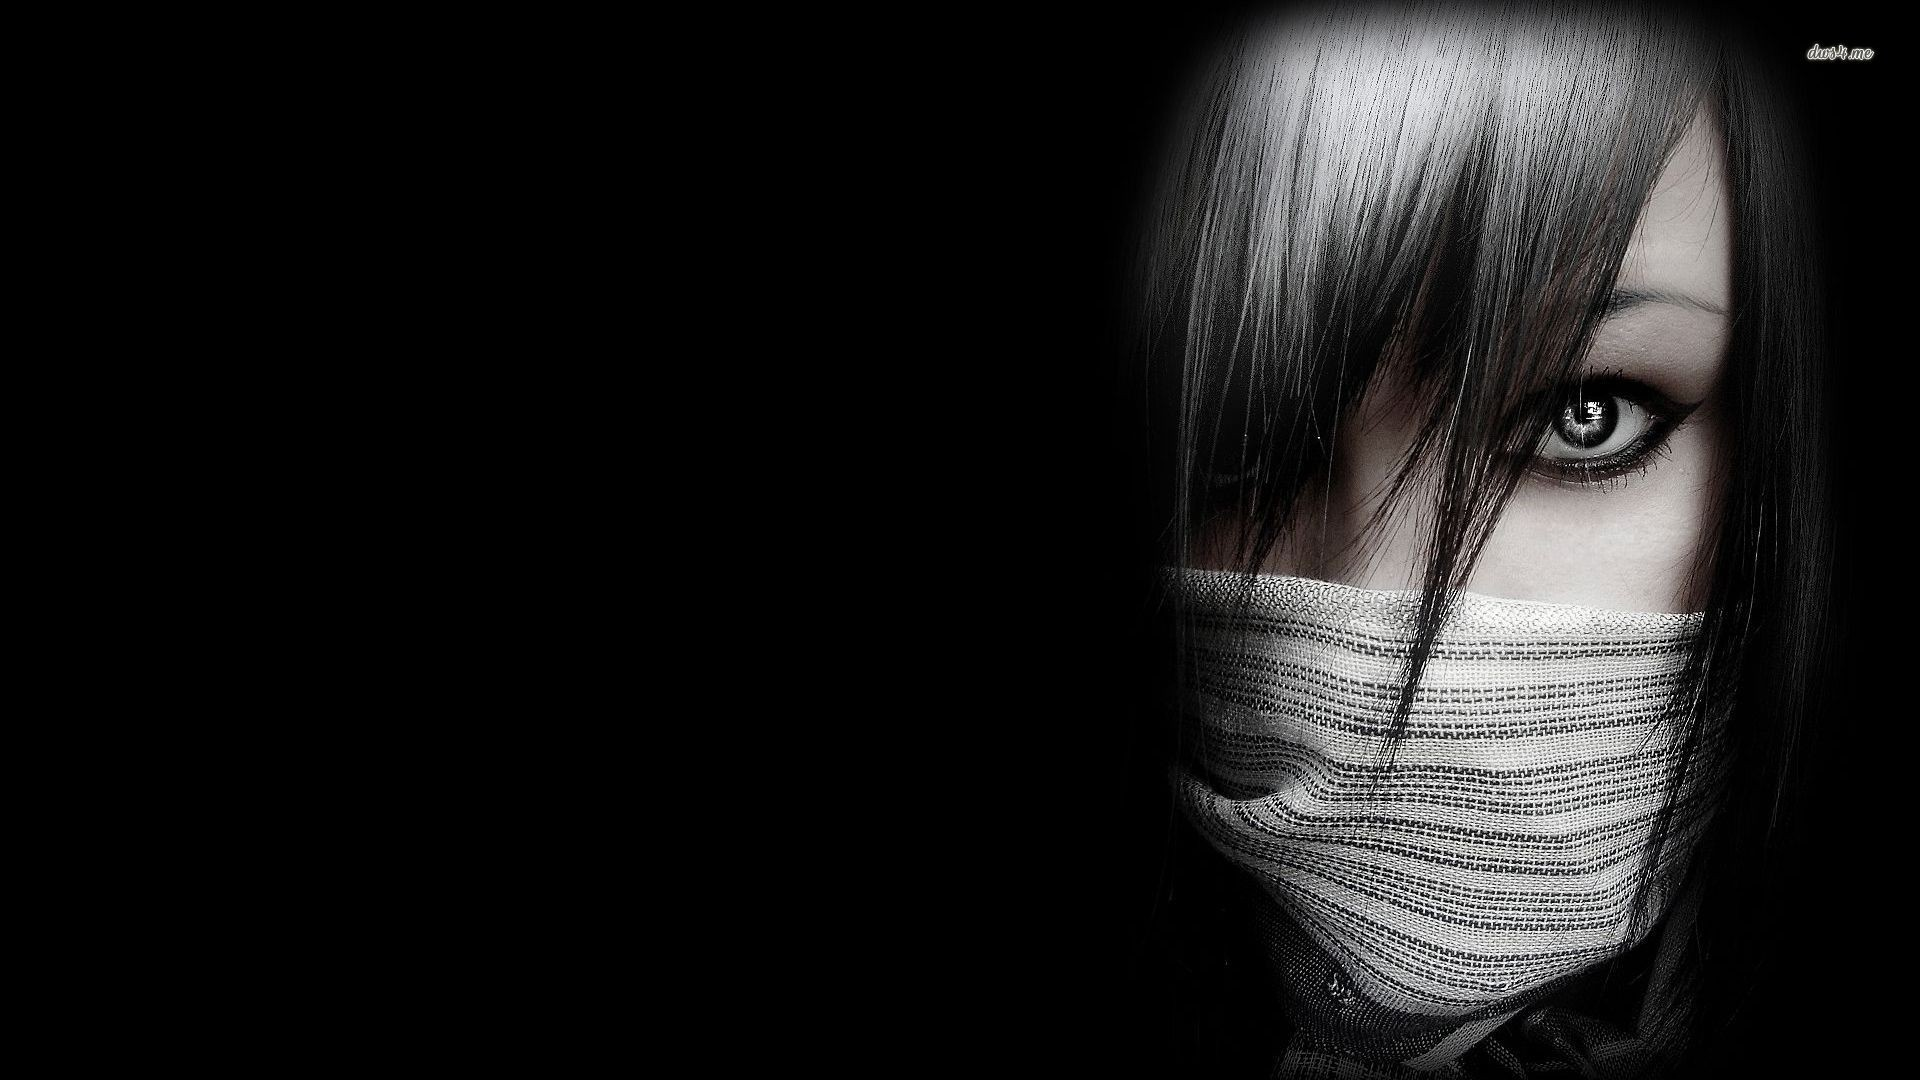 Fantasy Art Ninja Mask Wallpapers Hd Desktop And: 26+ Emo Backgrounds ·① Download Free Cool High Resolution